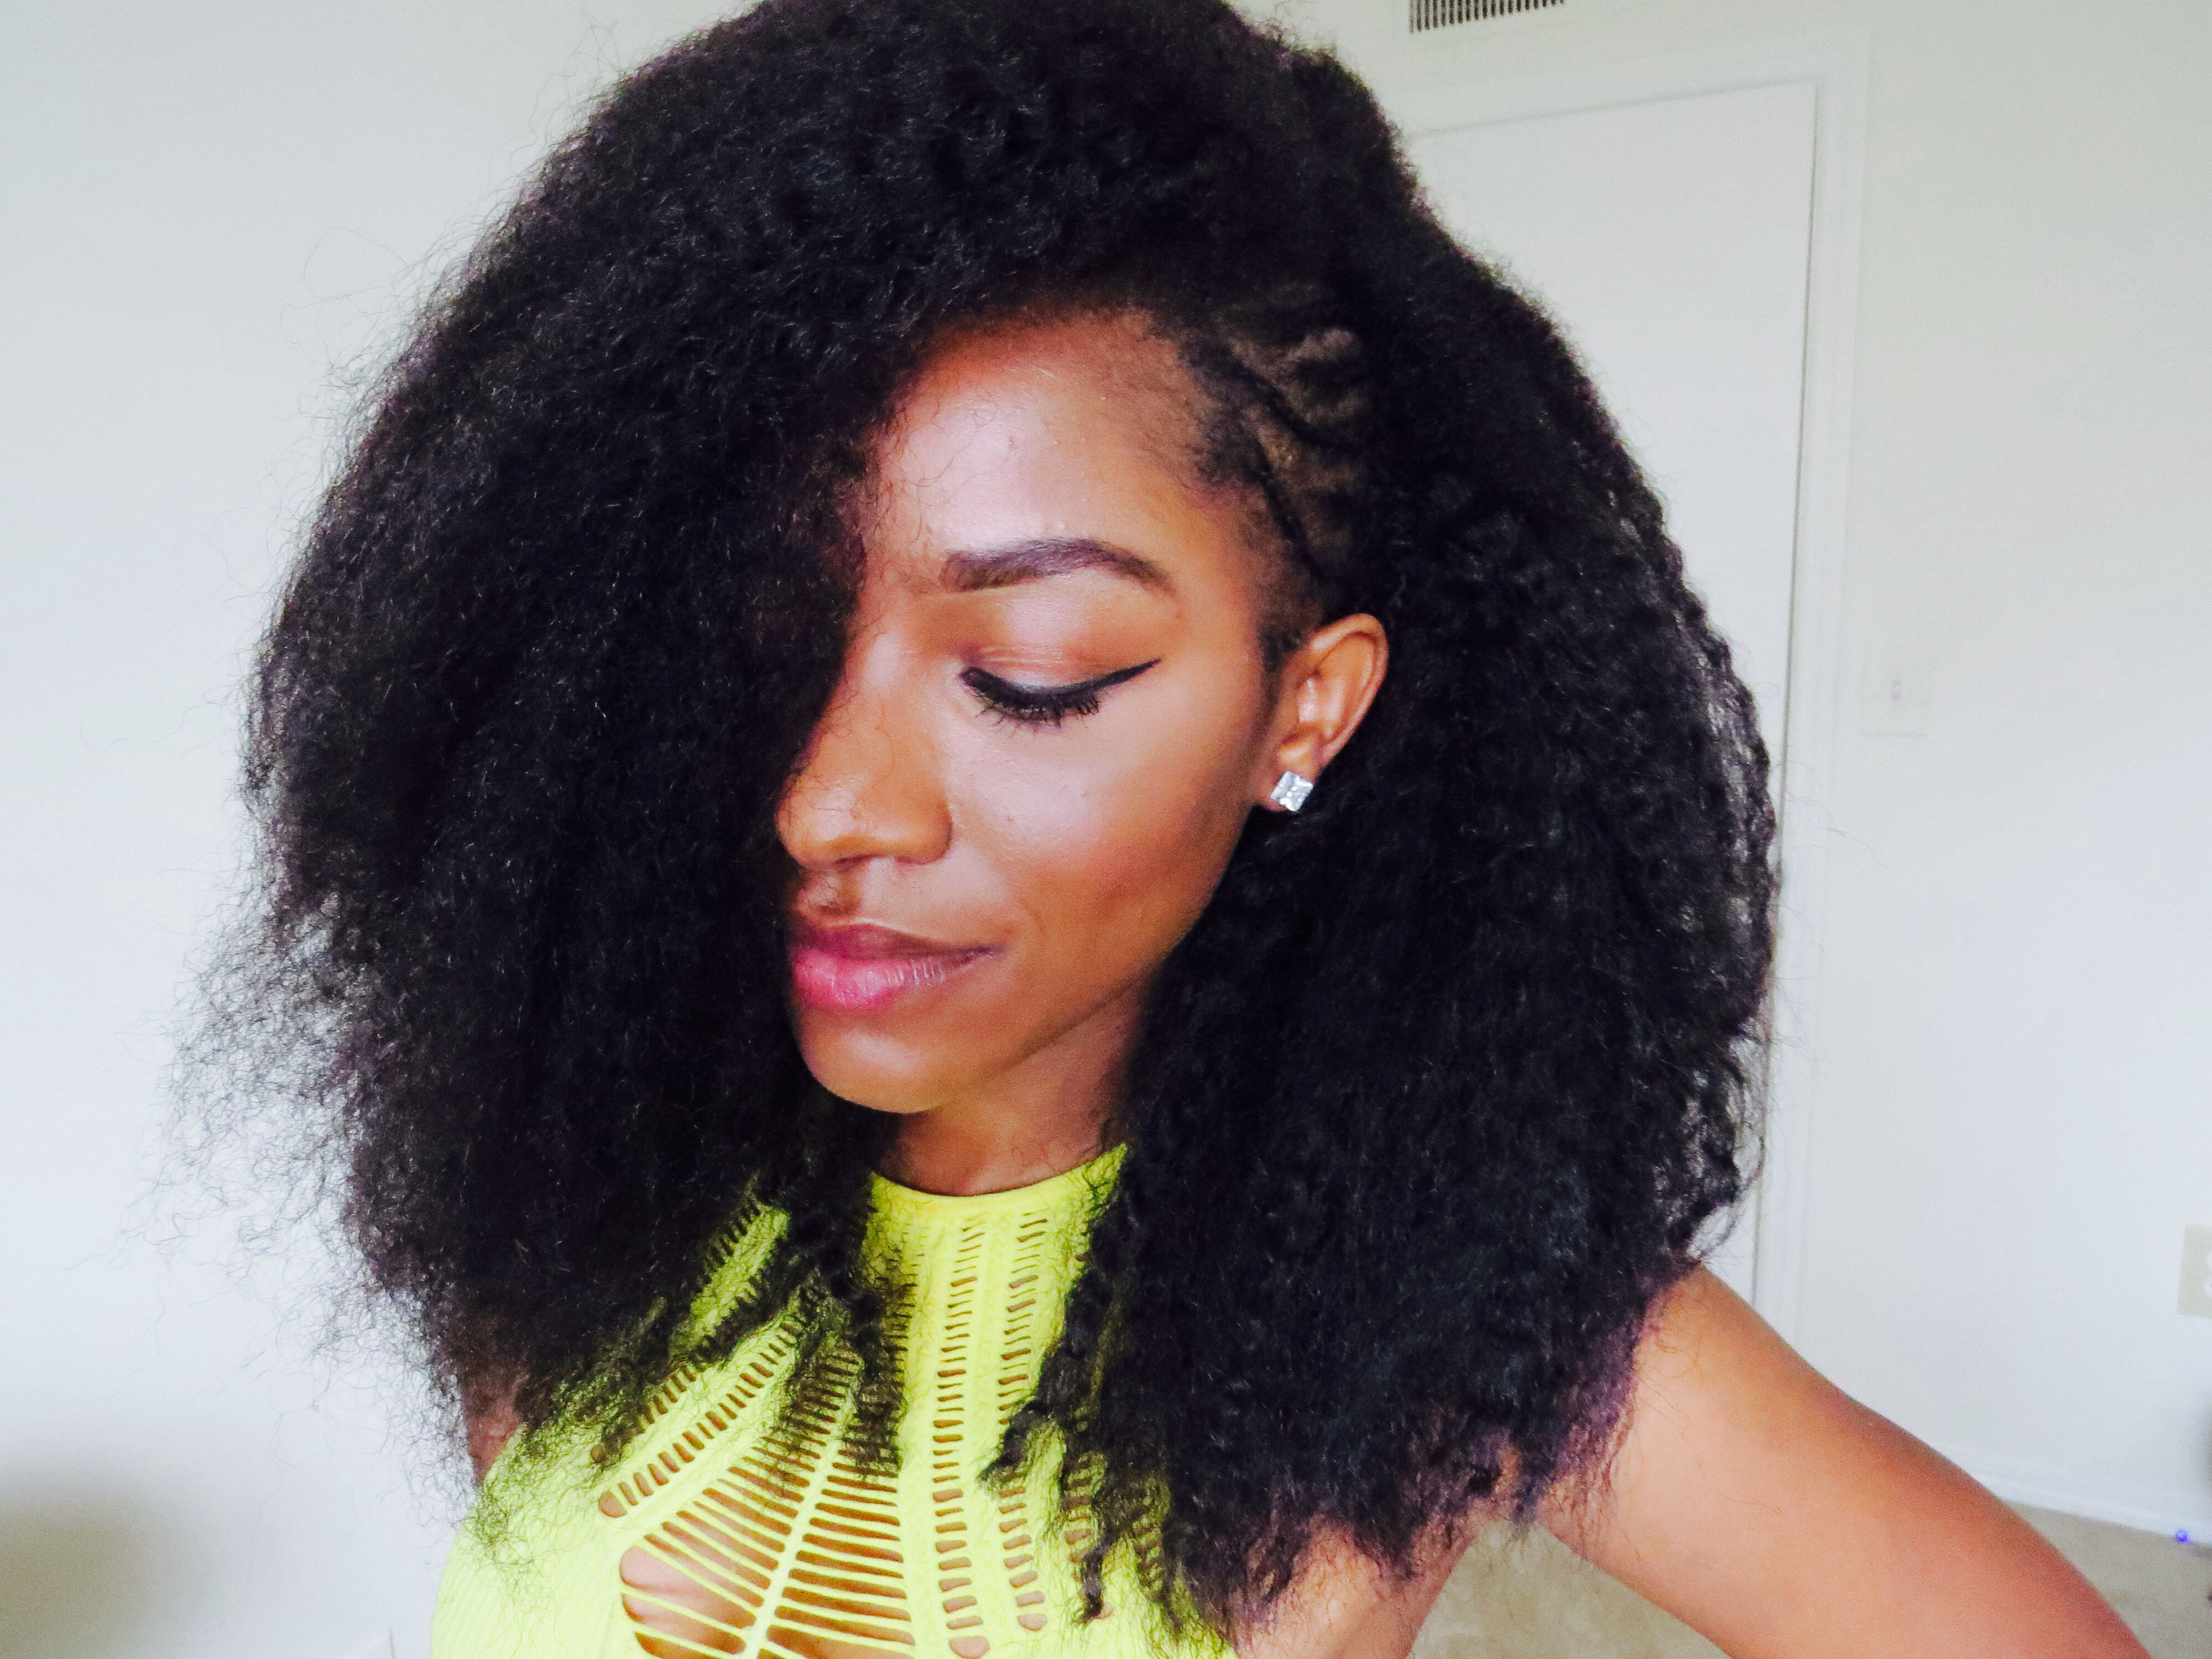 crochet braids w exposed side braids thebrilliantbeauty hairstyles pinterest crochet. Black Bedroom Furniture Sets. Home Design Ideas